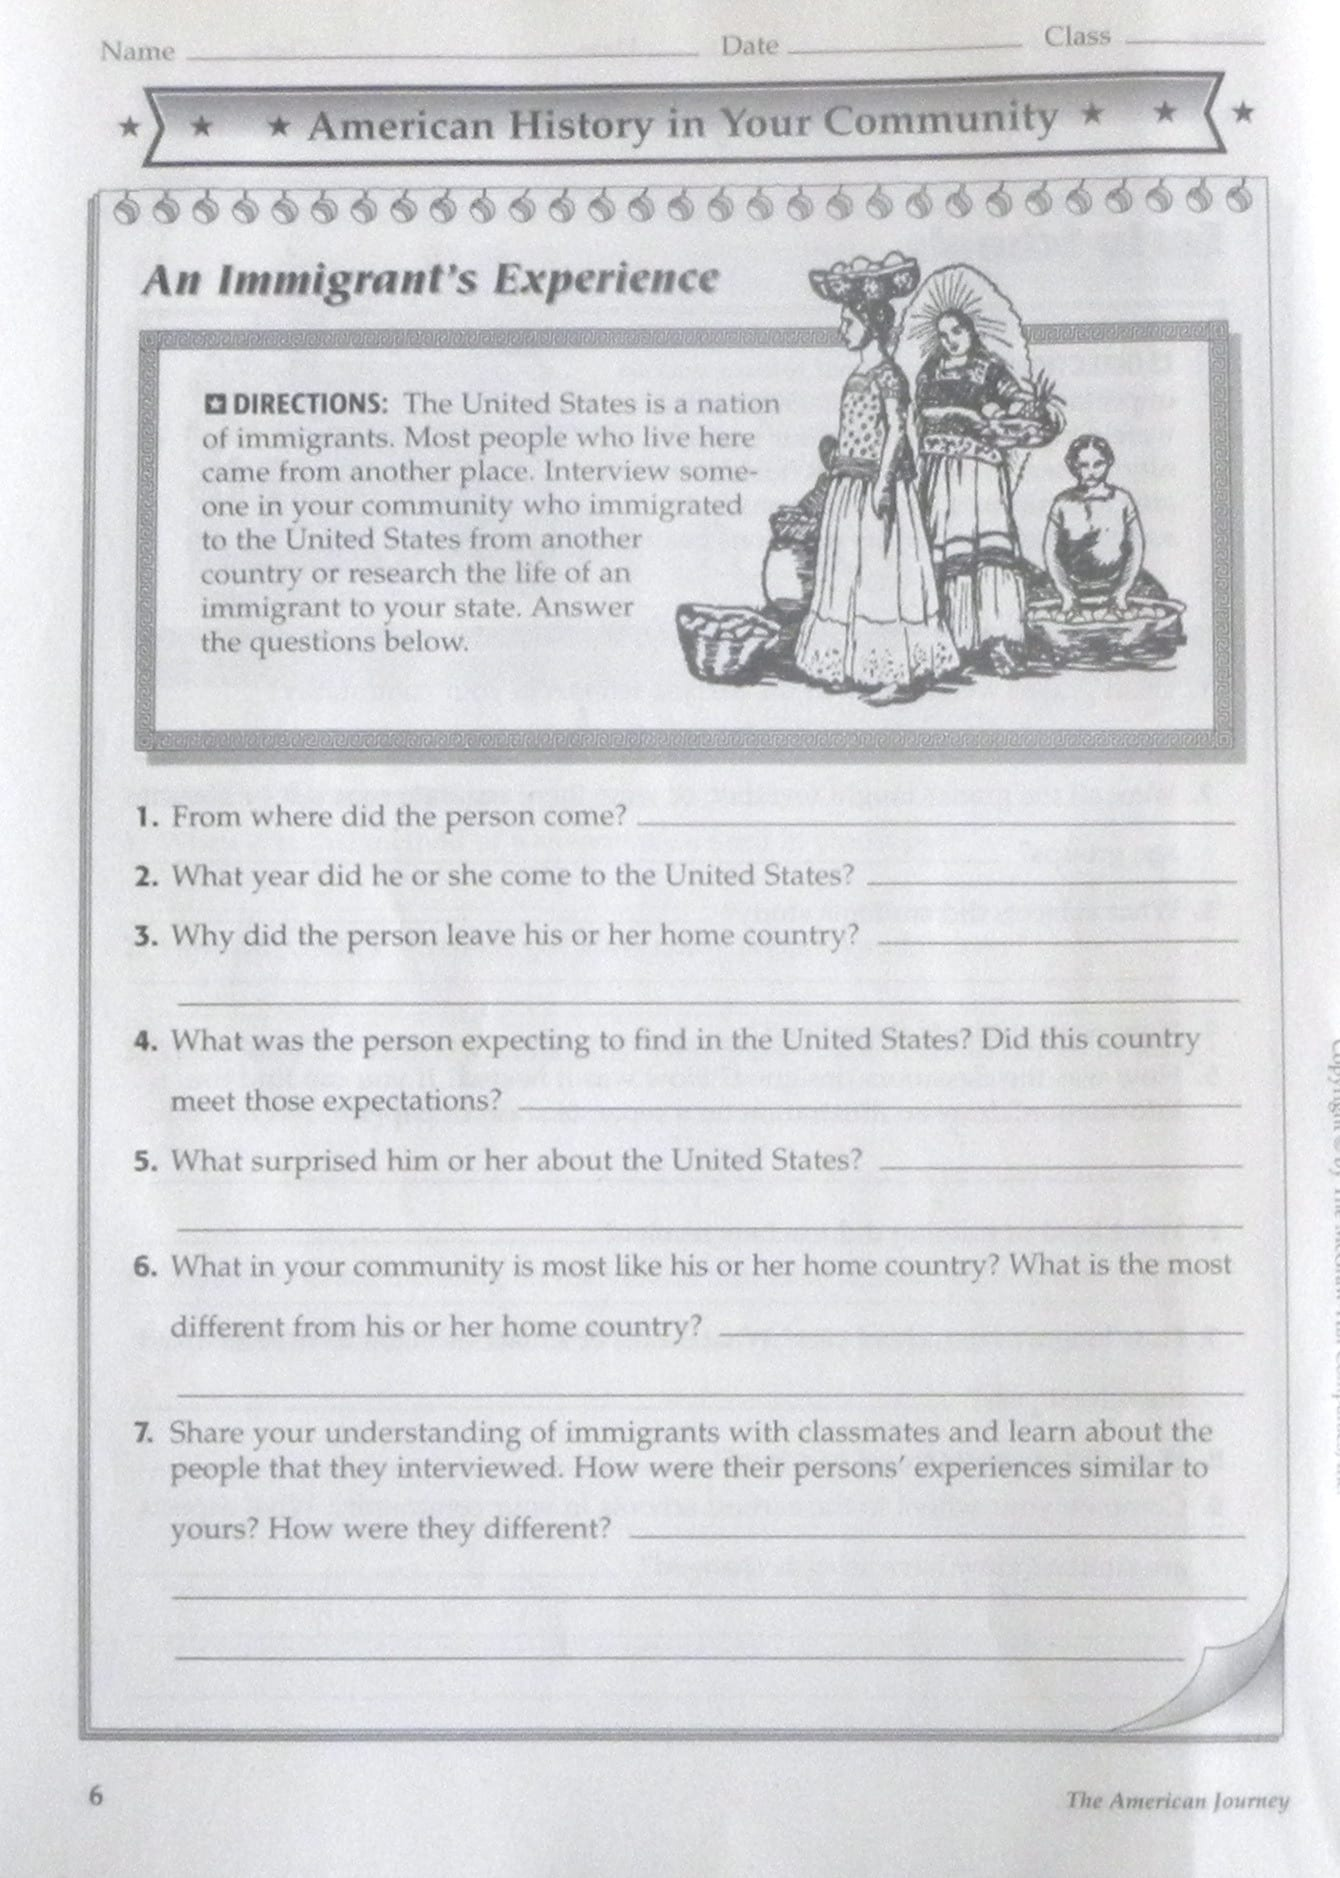 Immigration Assignment Montgomery County Public Schools